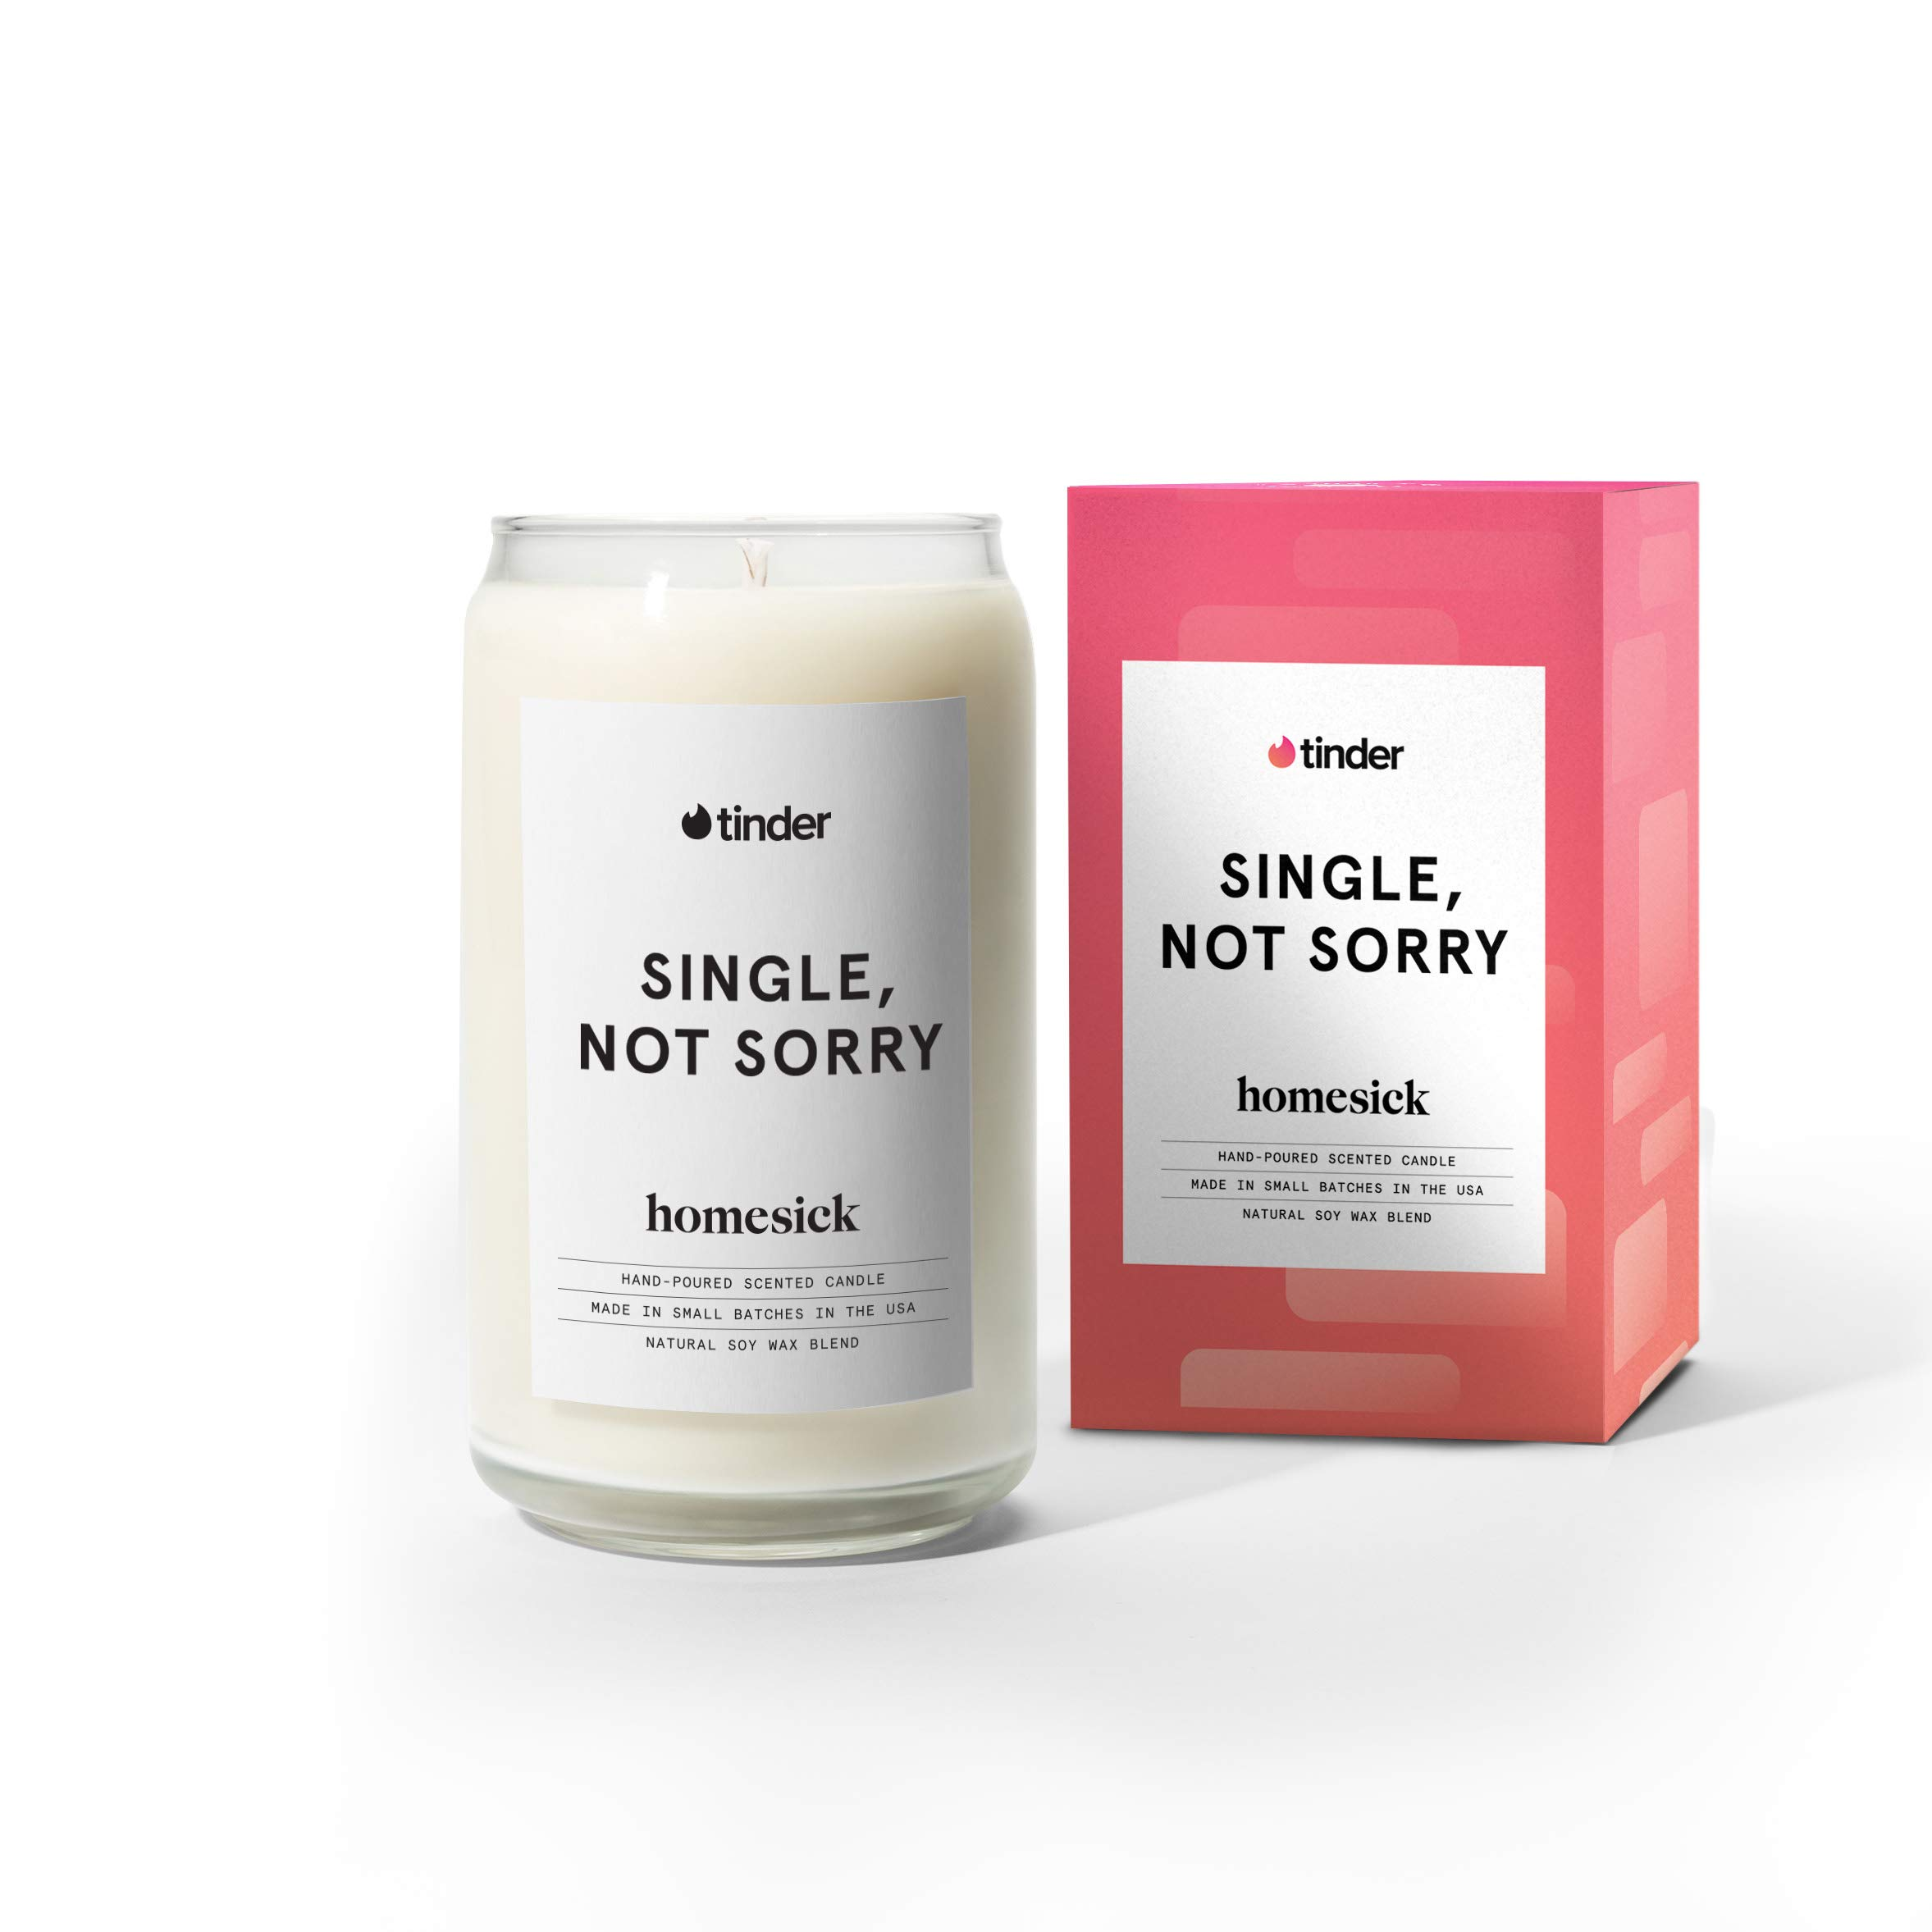 Homesick Scented Candle, Tinder